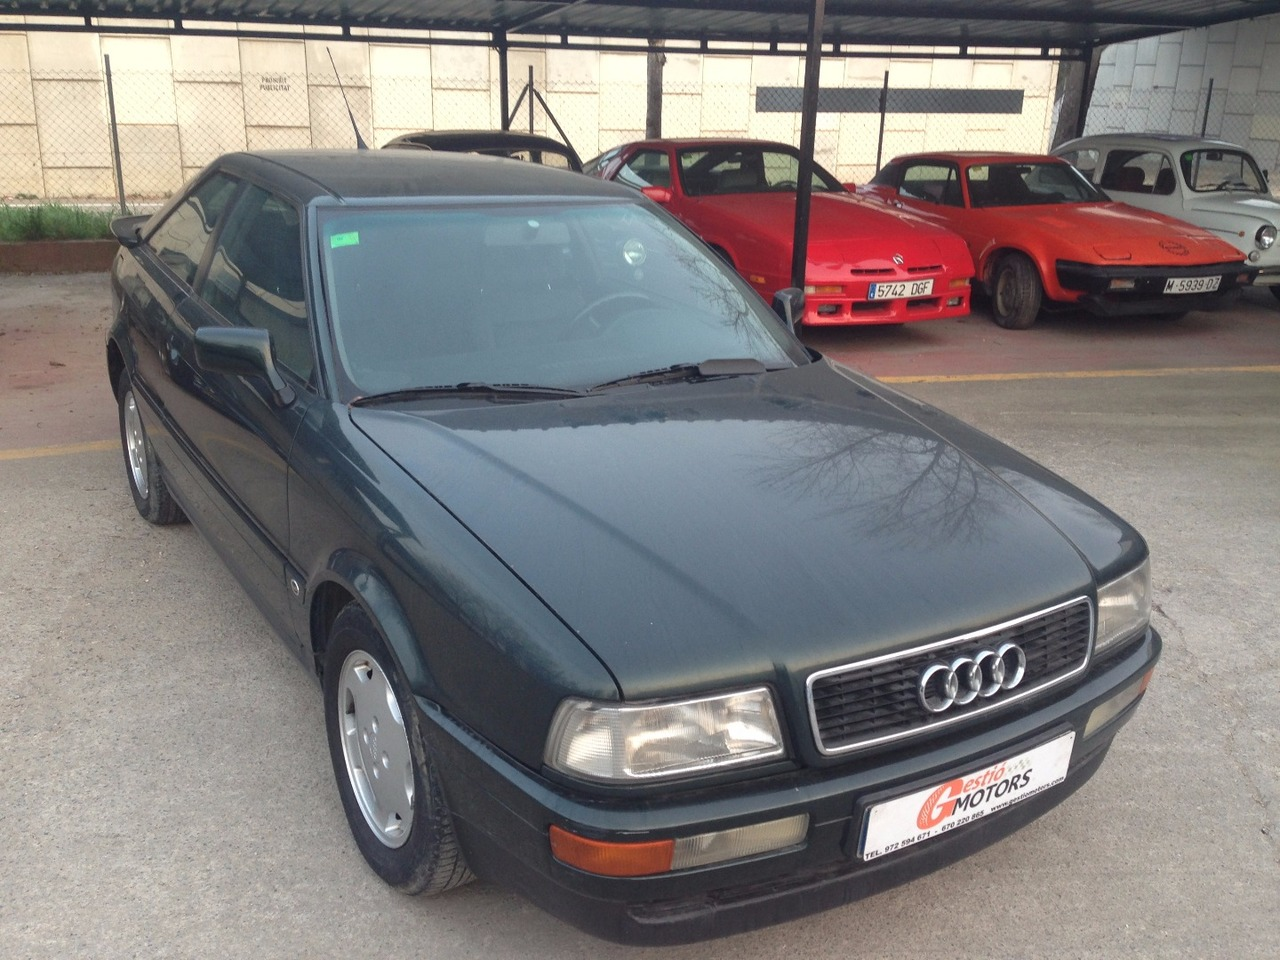 Audi 80 COUPE 2.3 INY   - Foto 1